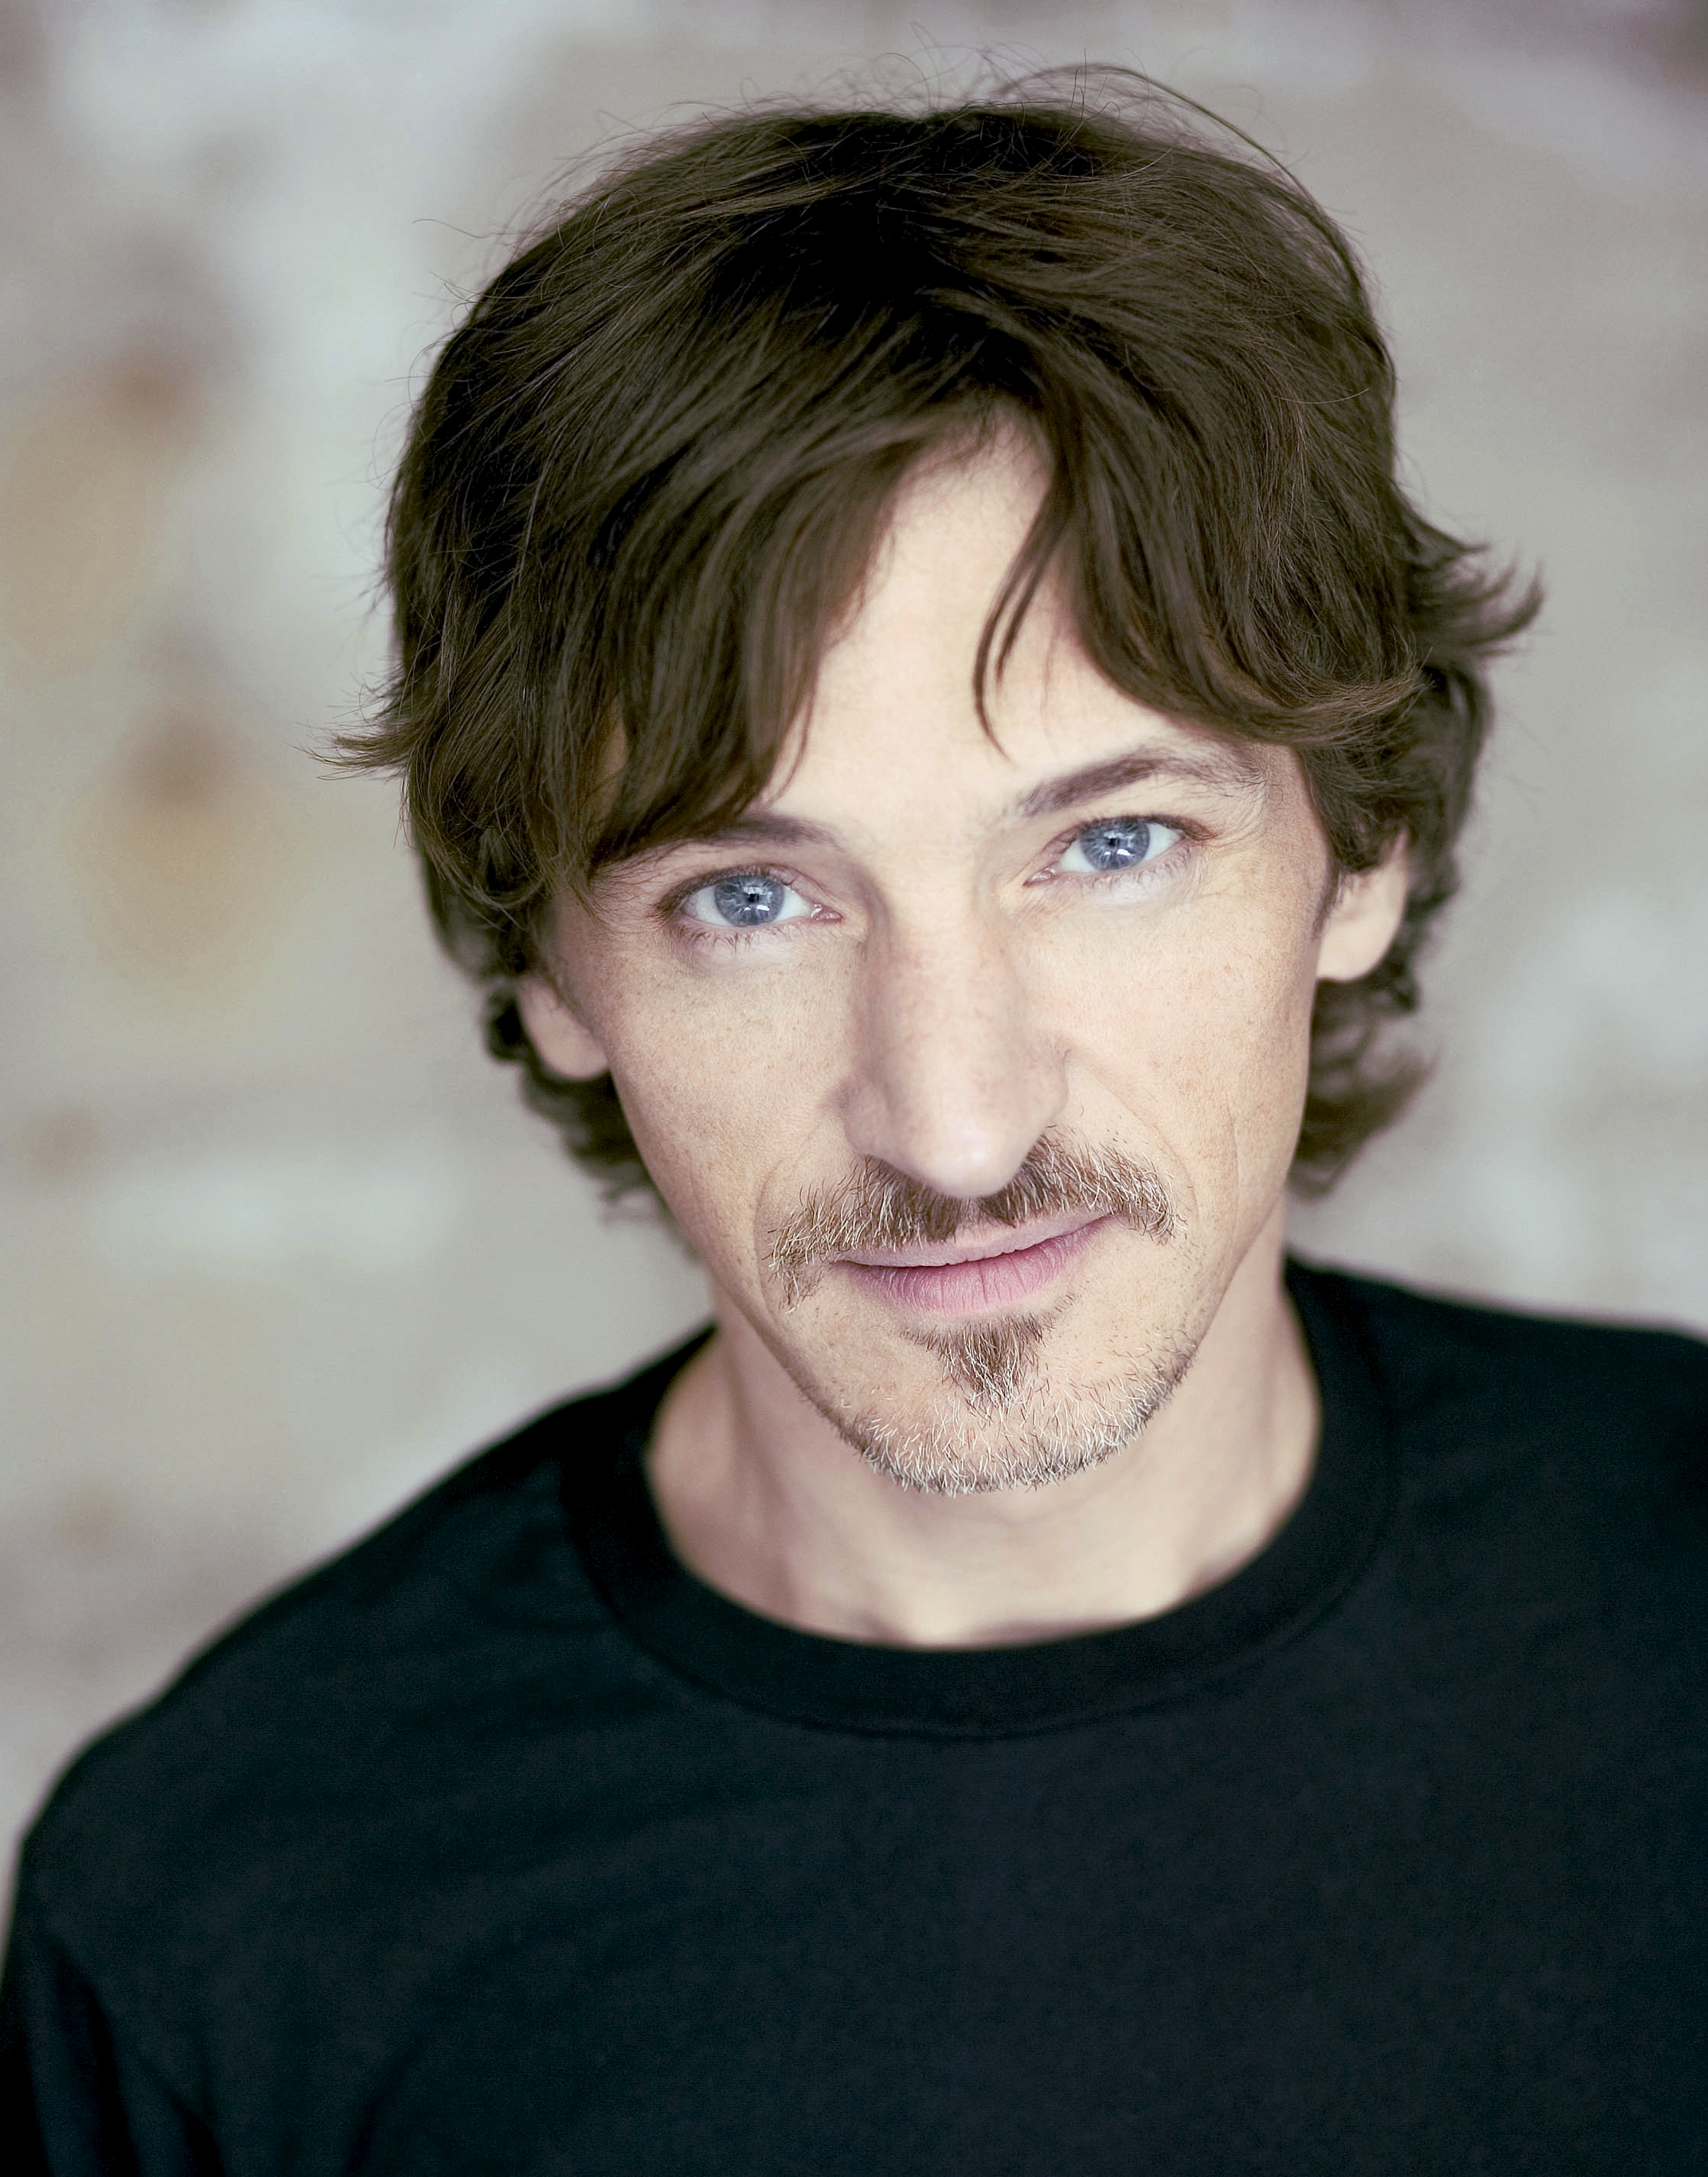 John Hawkes earned a  million dollar salary - leaving the net worth at 4 million in 2018